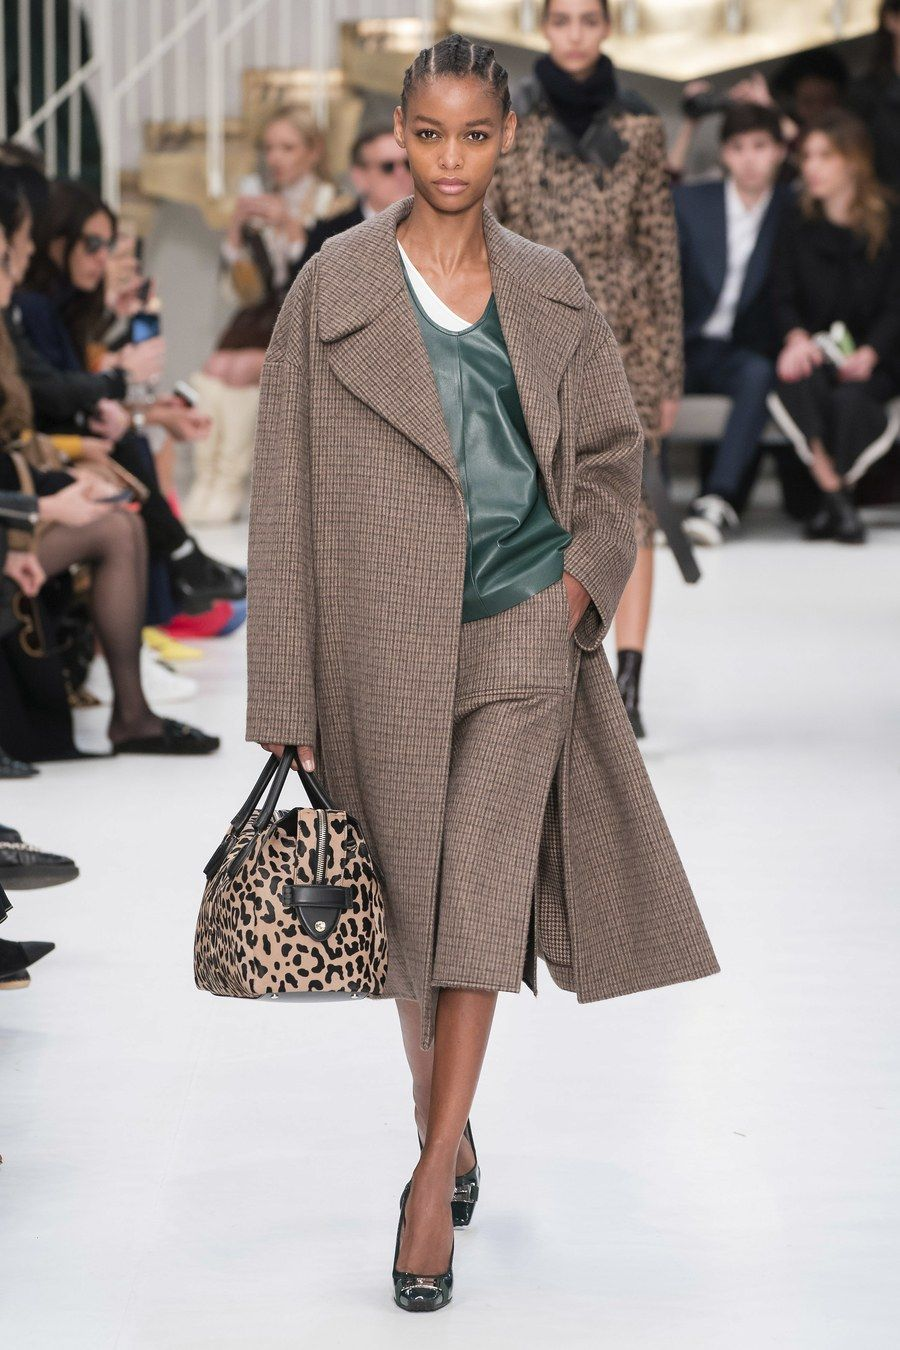 Sfilata di moda ready-to-wear dell'autunno 2019 di Tod's